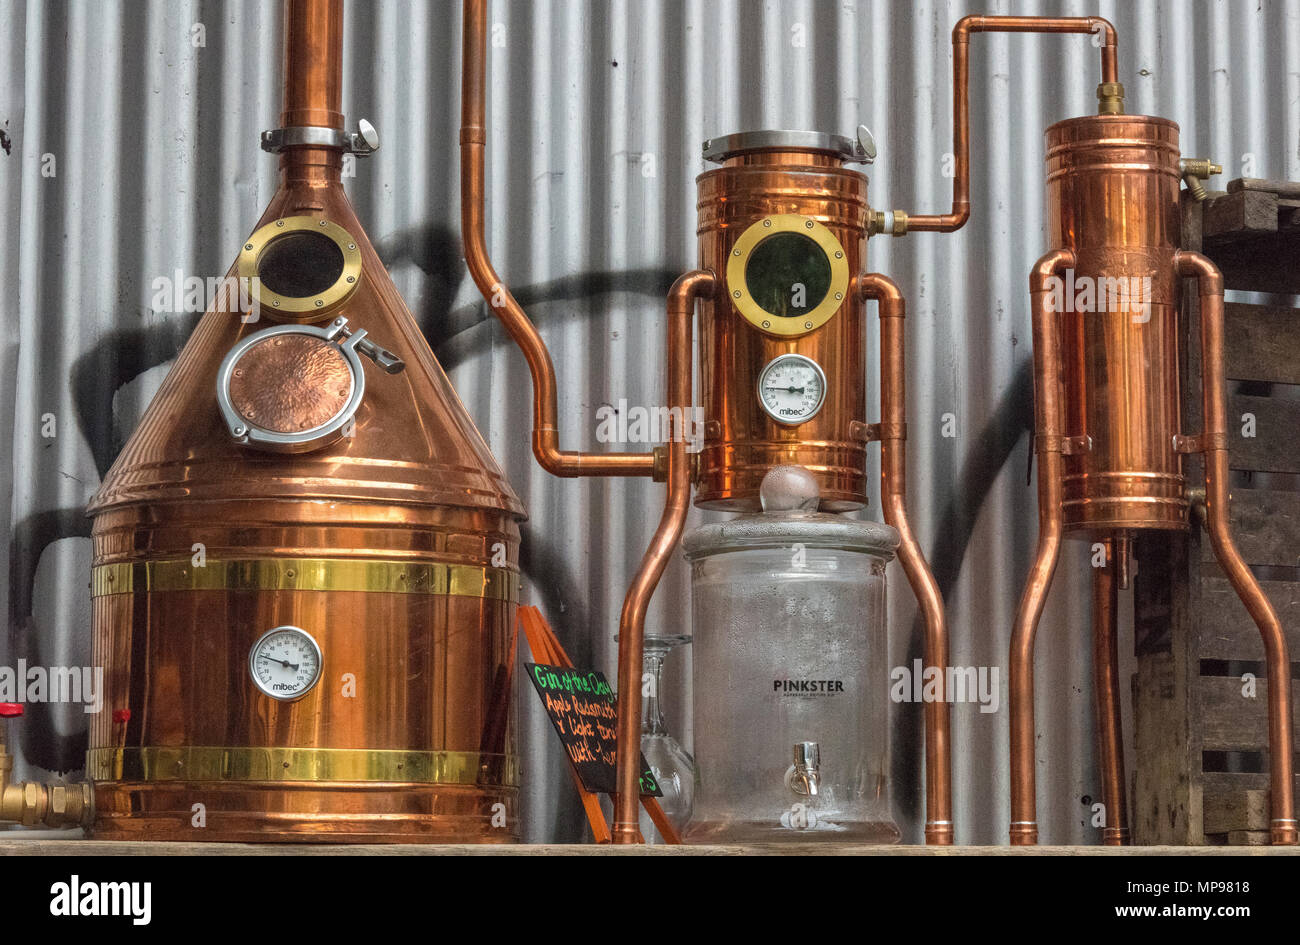 A still or distillery equipment made from copper at a gin manufacturer in central london. Micro breweries and distilling gin with basic kit and gear. - Stock Image